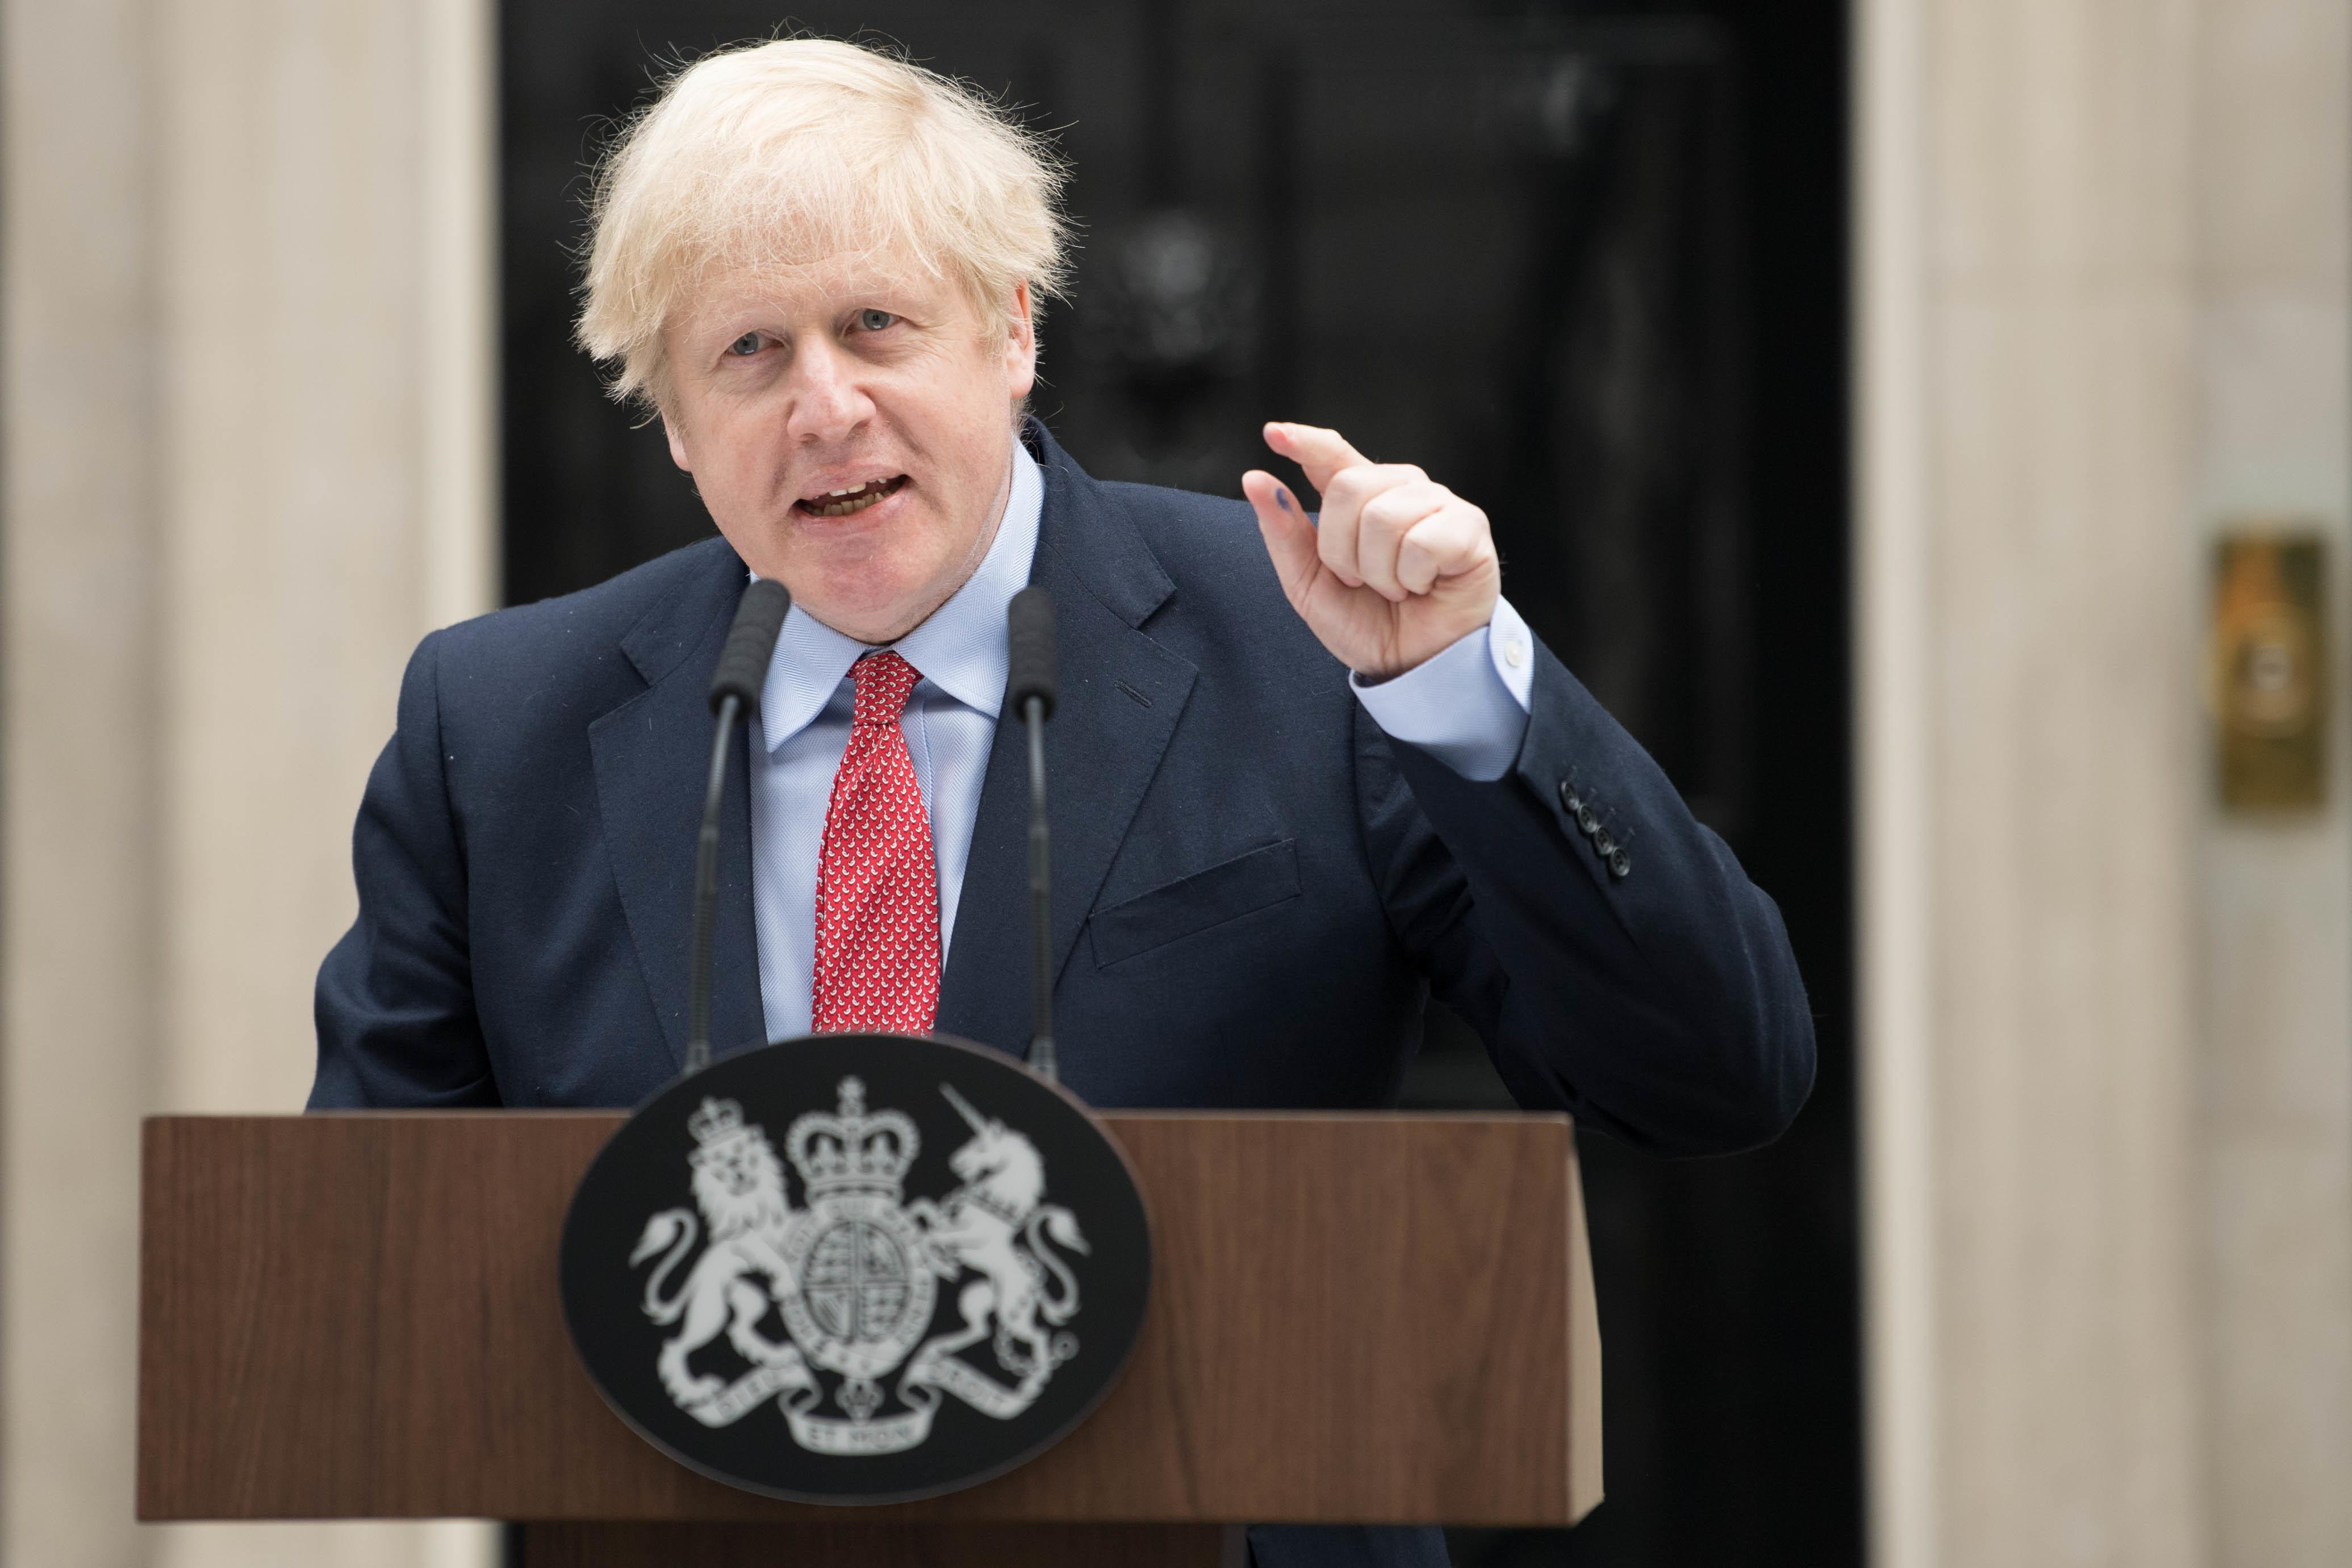 Prime Minister Boris Johnson makes a statement outside 10 Downing Street, London, as he resumes working after spending two weeks recovering from Covid-19. PA Photo. Picture date: Monday April 27, 2020. The Prime Minister is resuming full-time duties at the head of the Government three weeks after he was admitted to hospital with the disease. See PA story HEALTH Coronavirus. Photo credit should read: Stefan Rousseau/PA Wire (Photo by Stefan Rousseau/PA Images via Getty Images)